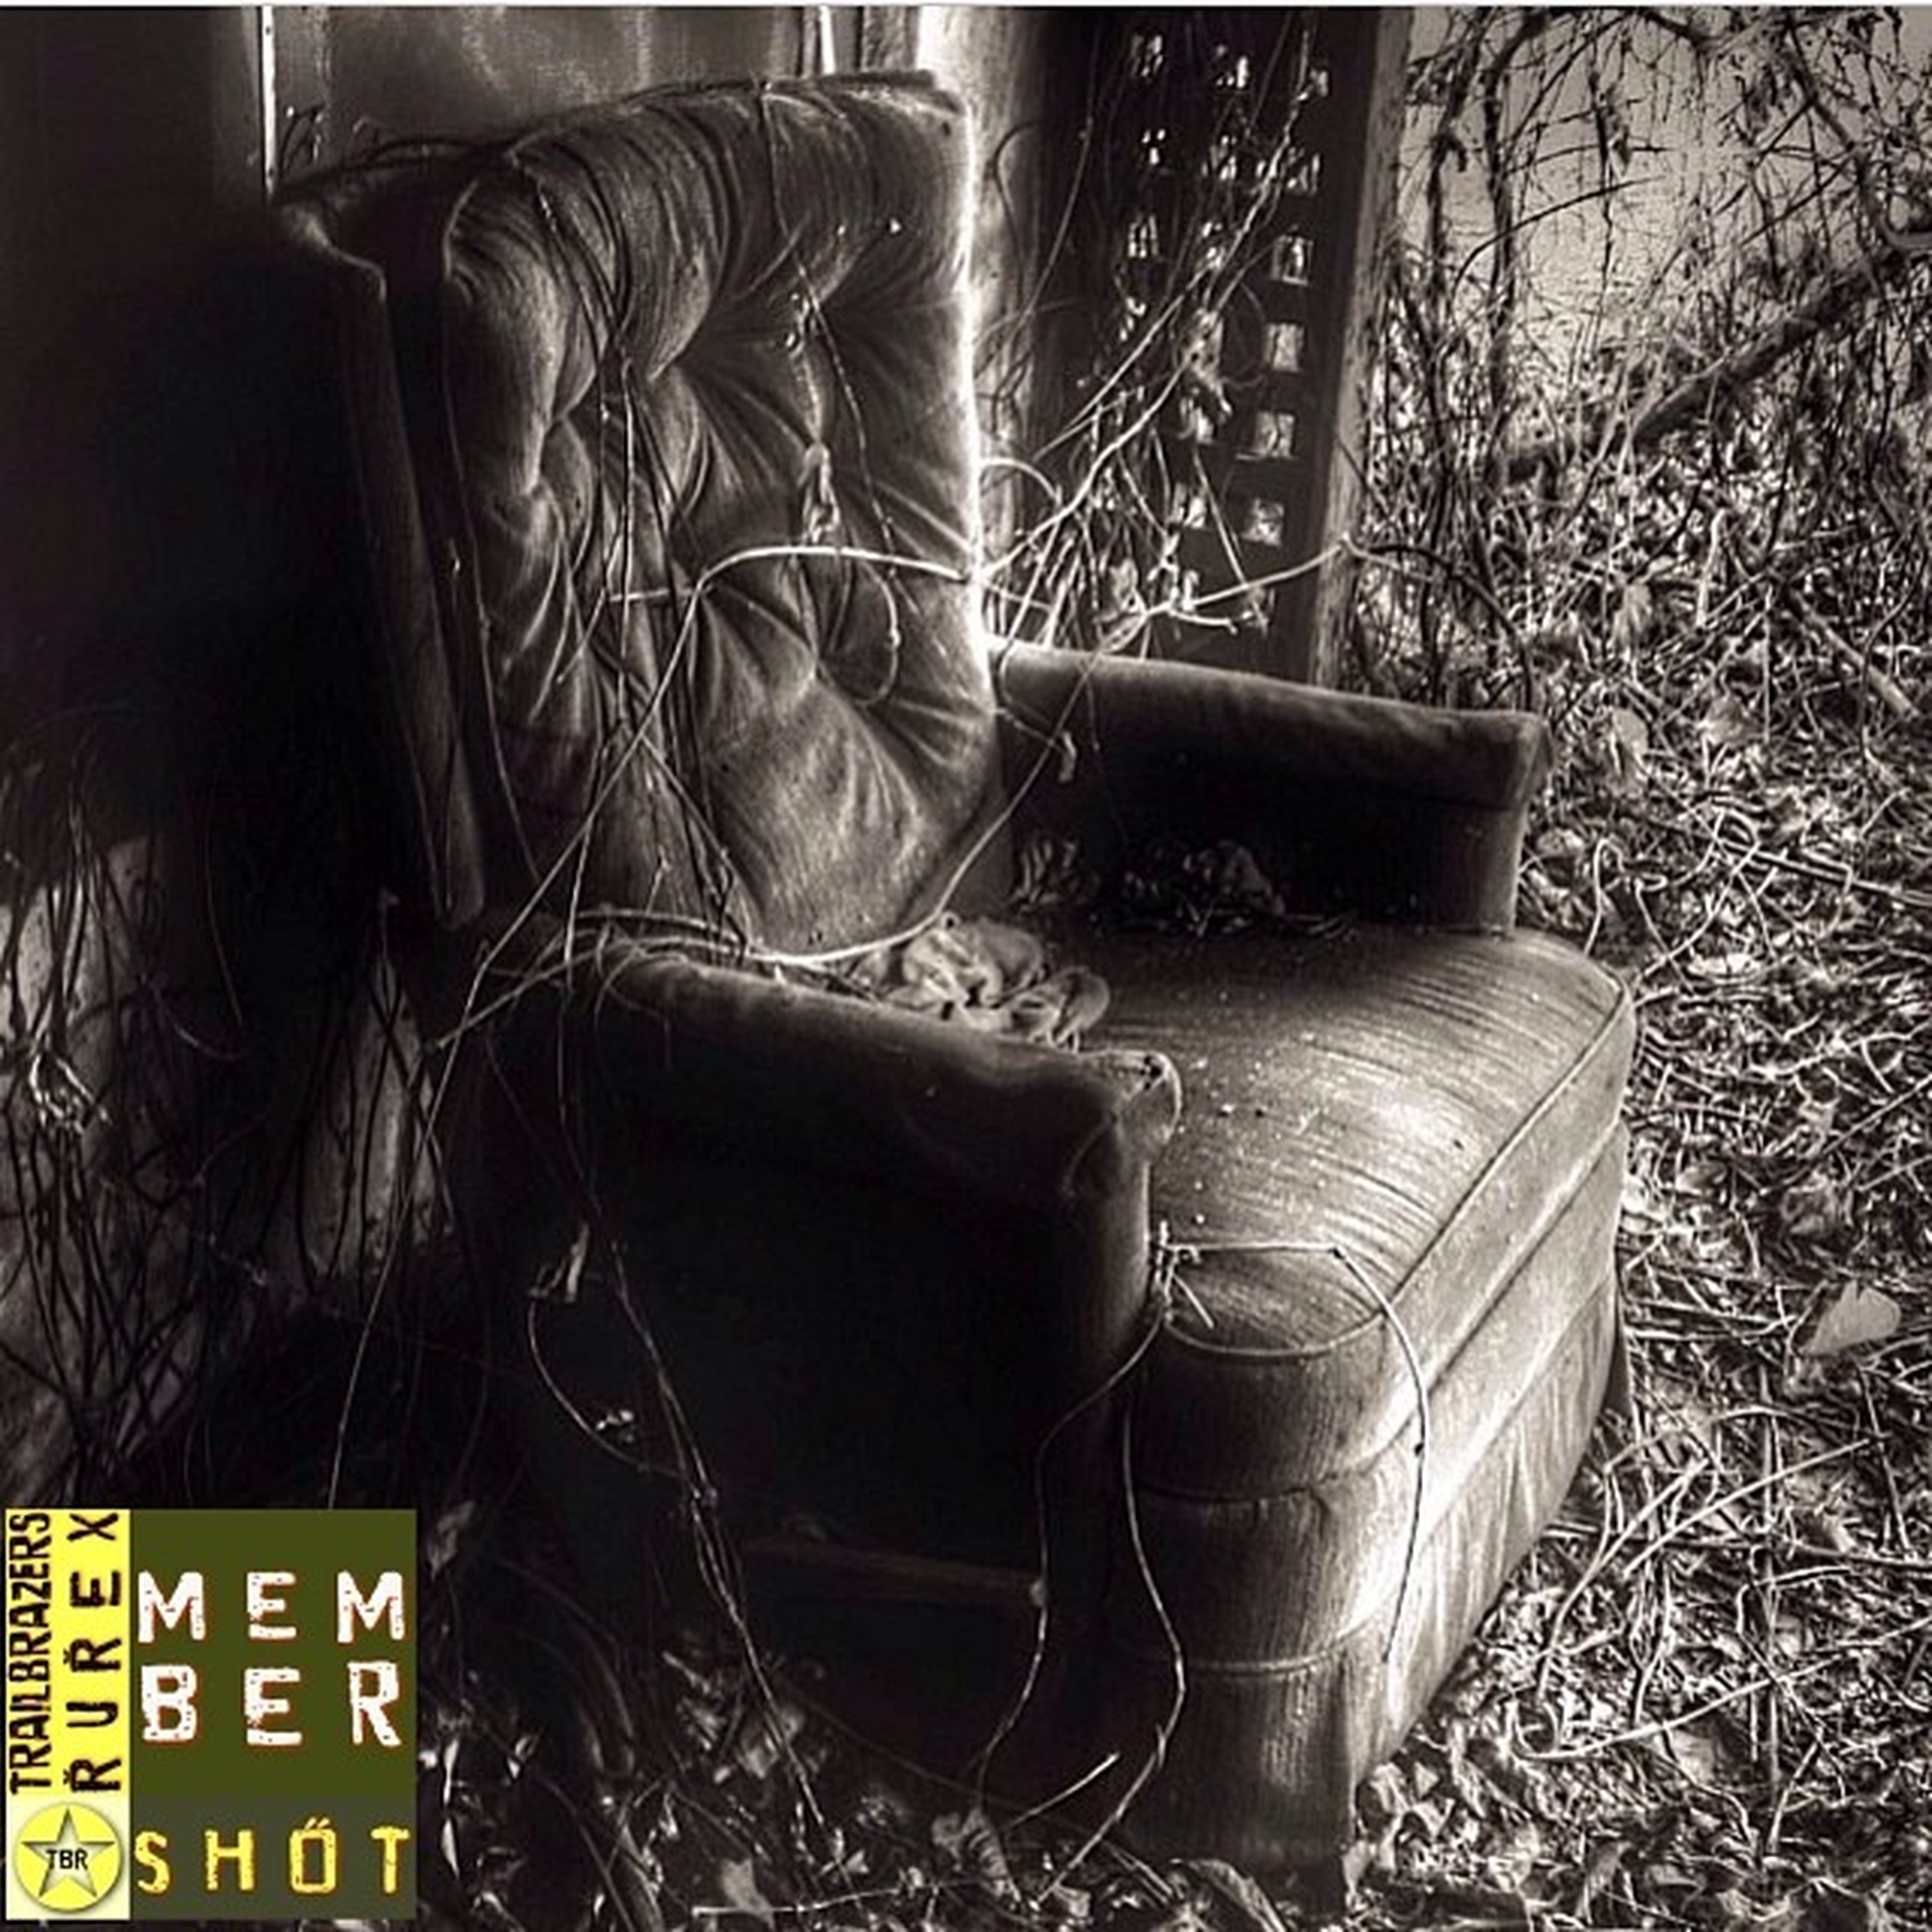 close-up, still life, indoors, chair, music, no people, old-fashioned, metal, arts culture and entertainment, old, auto post production filter, absence, communication, shoe, technology, day, retro styled, hanging, obsolete, text